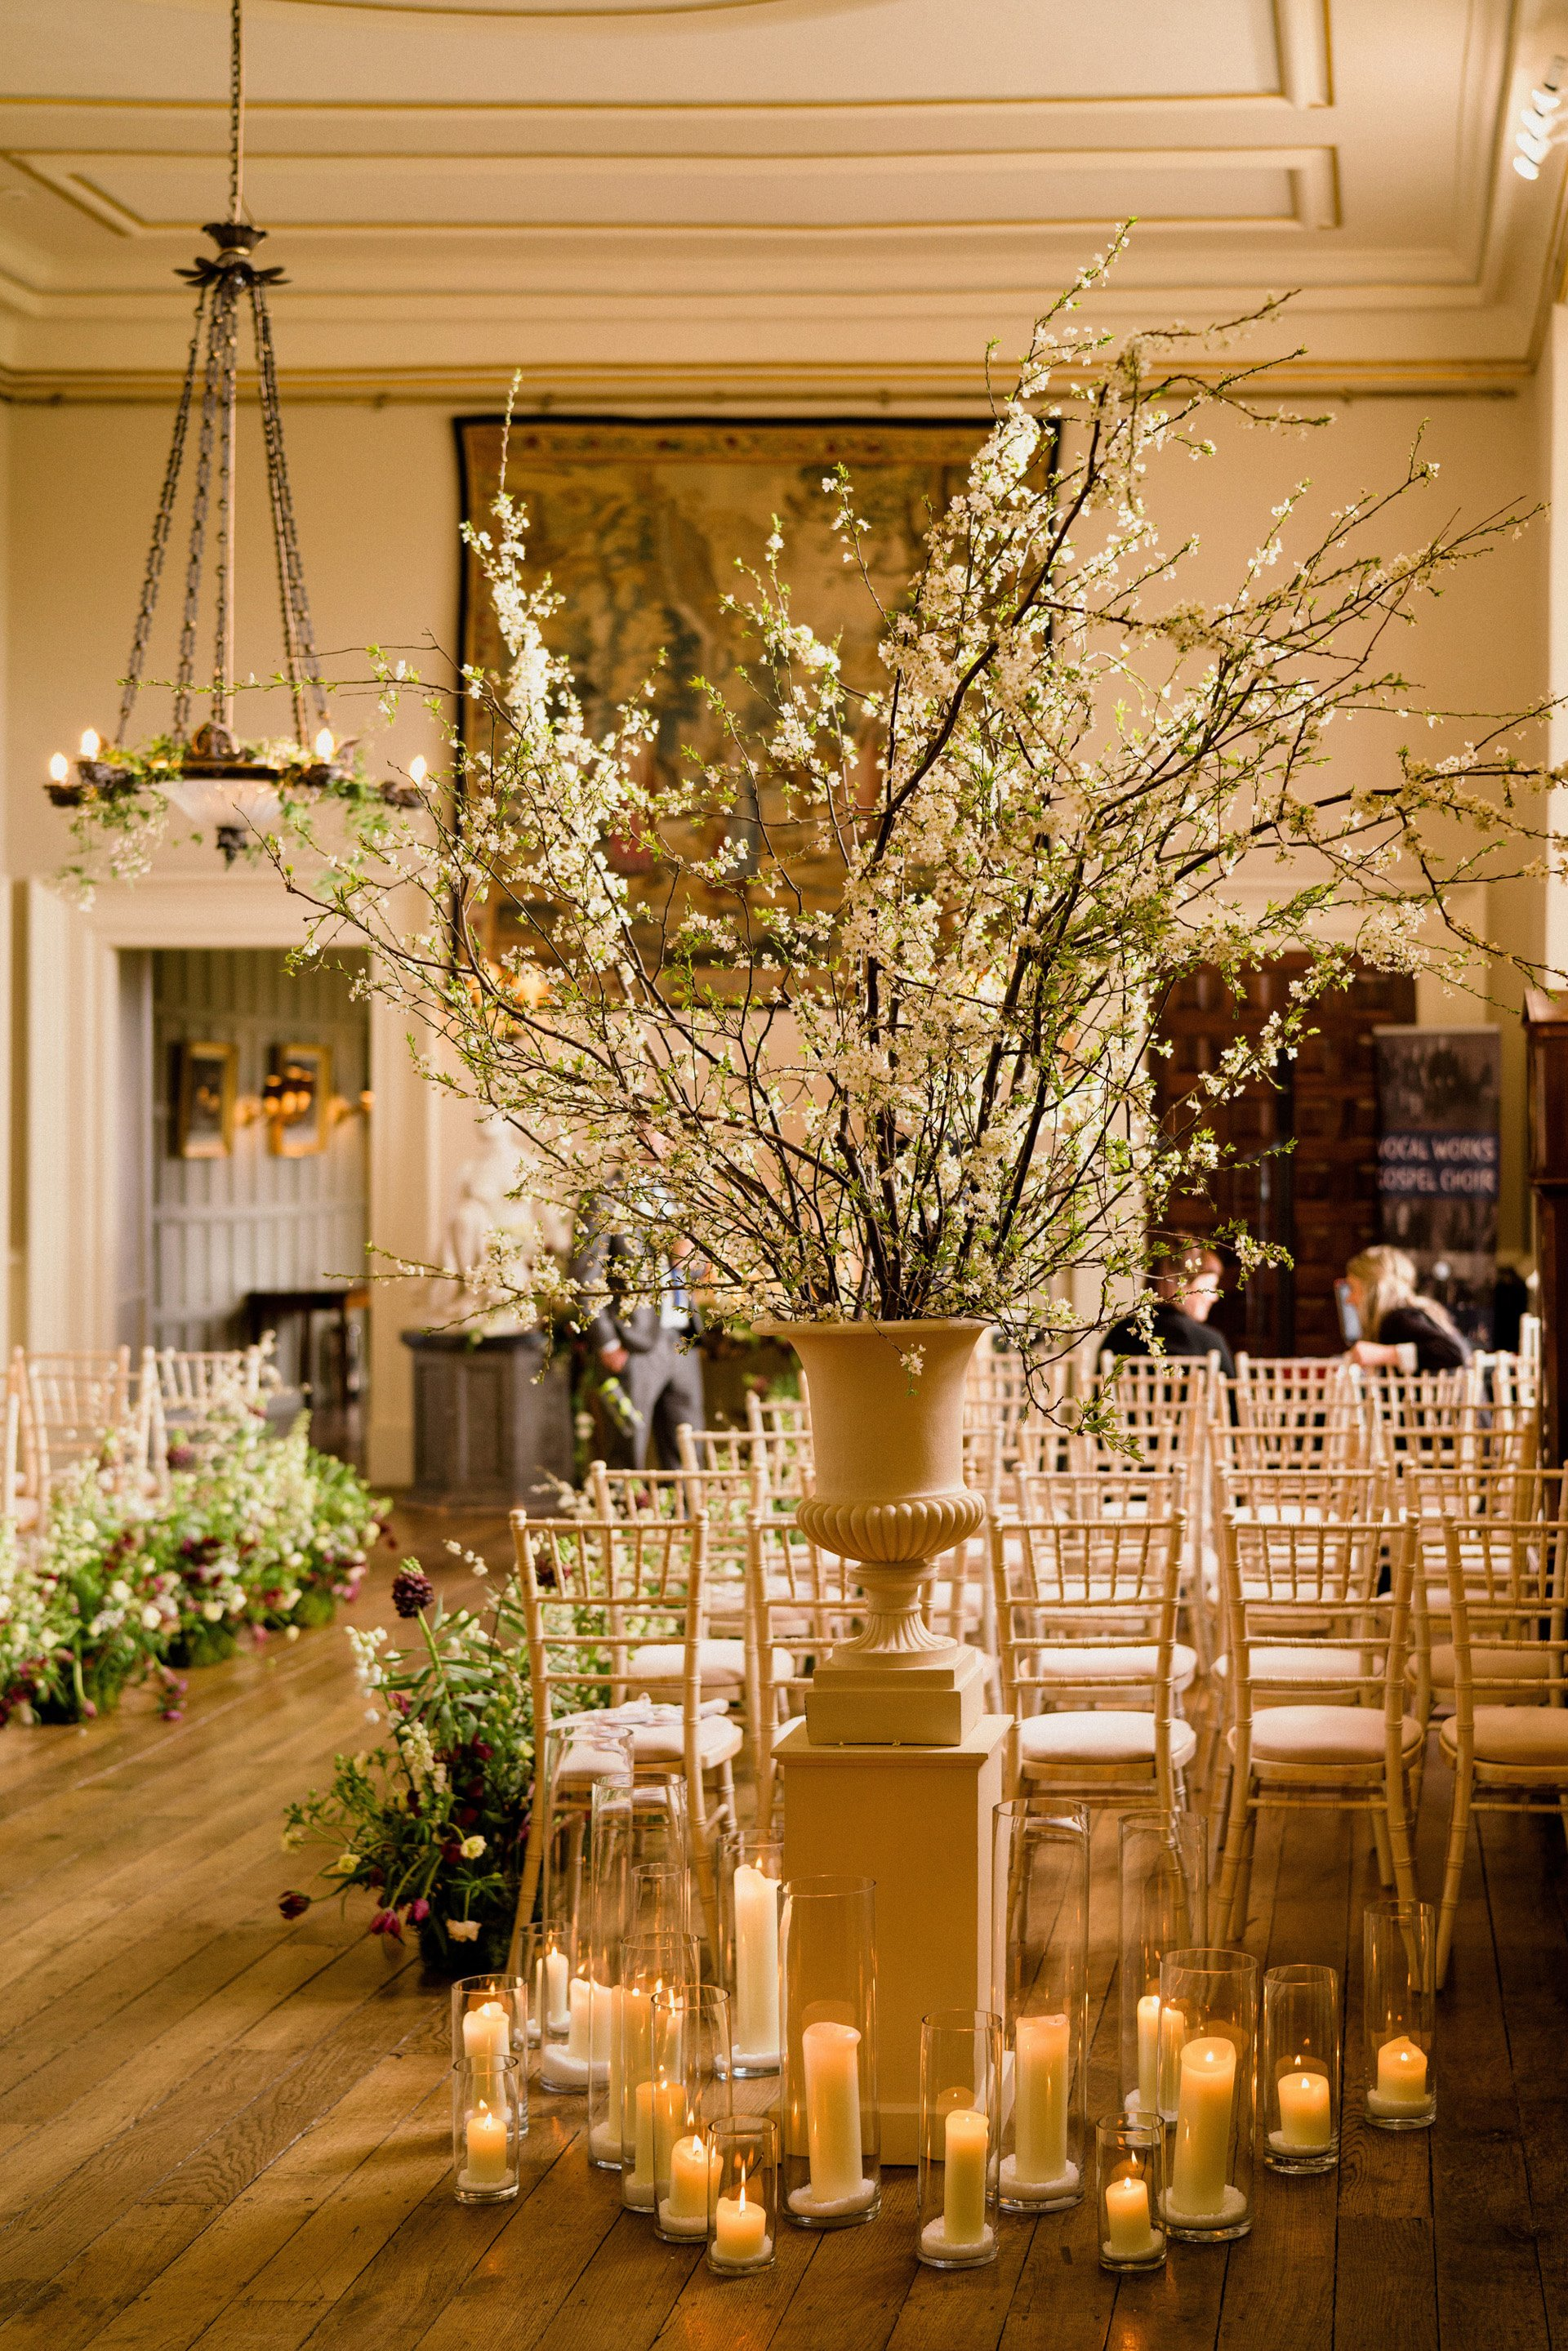 Spring wedding decor with candles and spring branches in urns in a stately home hall in the Cotswolds